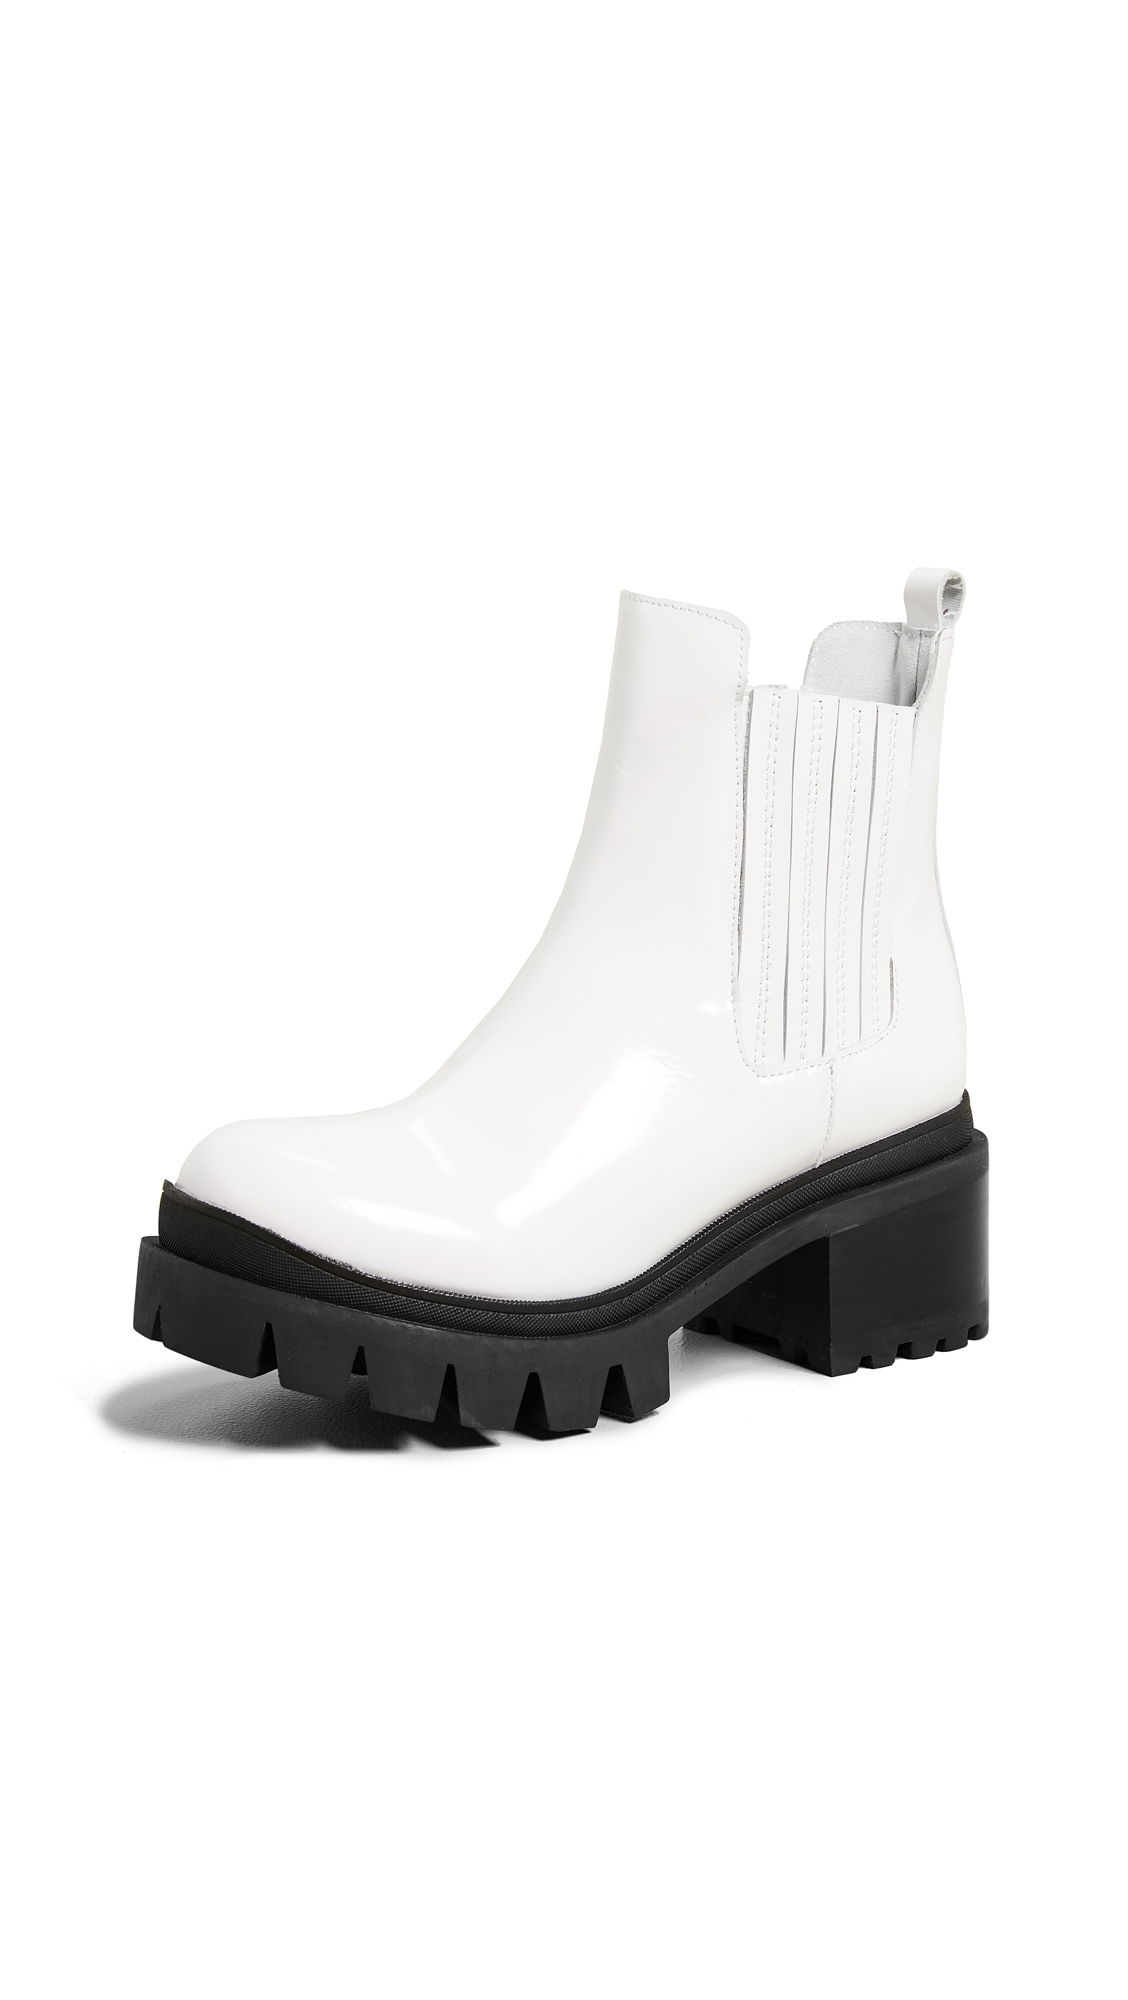 Jeffrey Campbell Fright Lug Sole Chelsea Boots - White Box